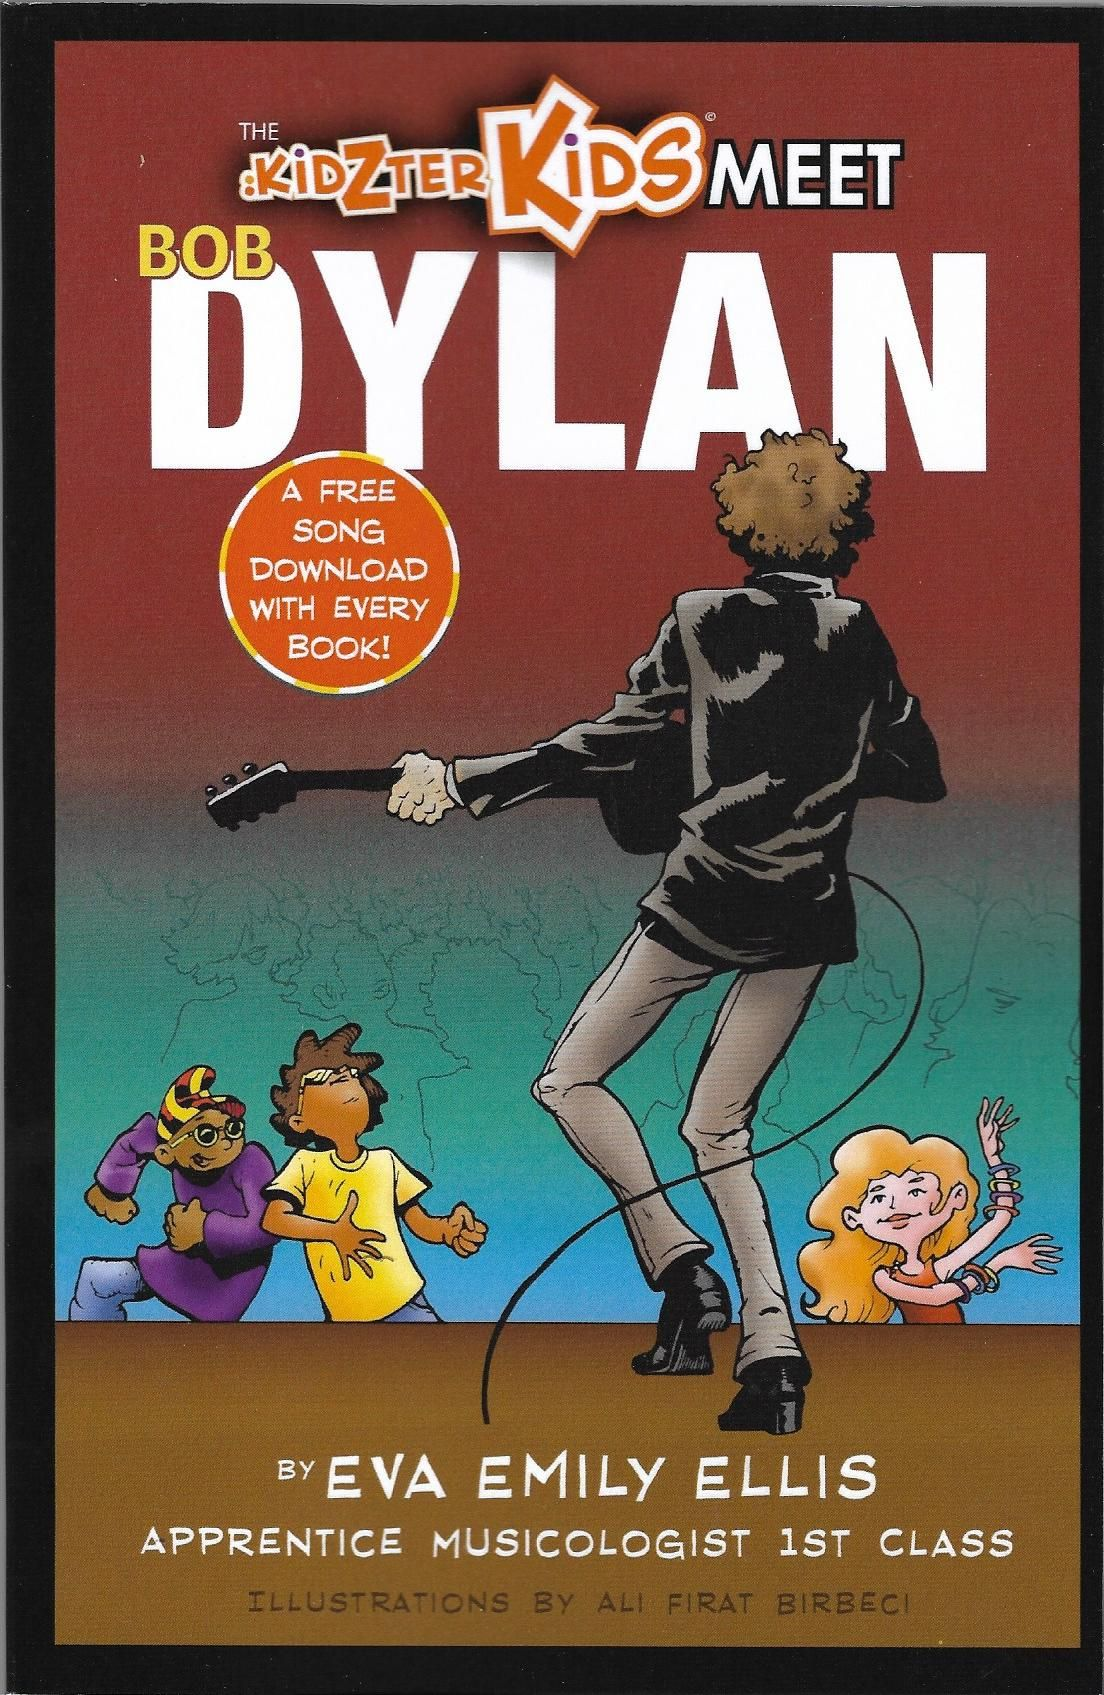 kidzer kids meet Bob Dylan book